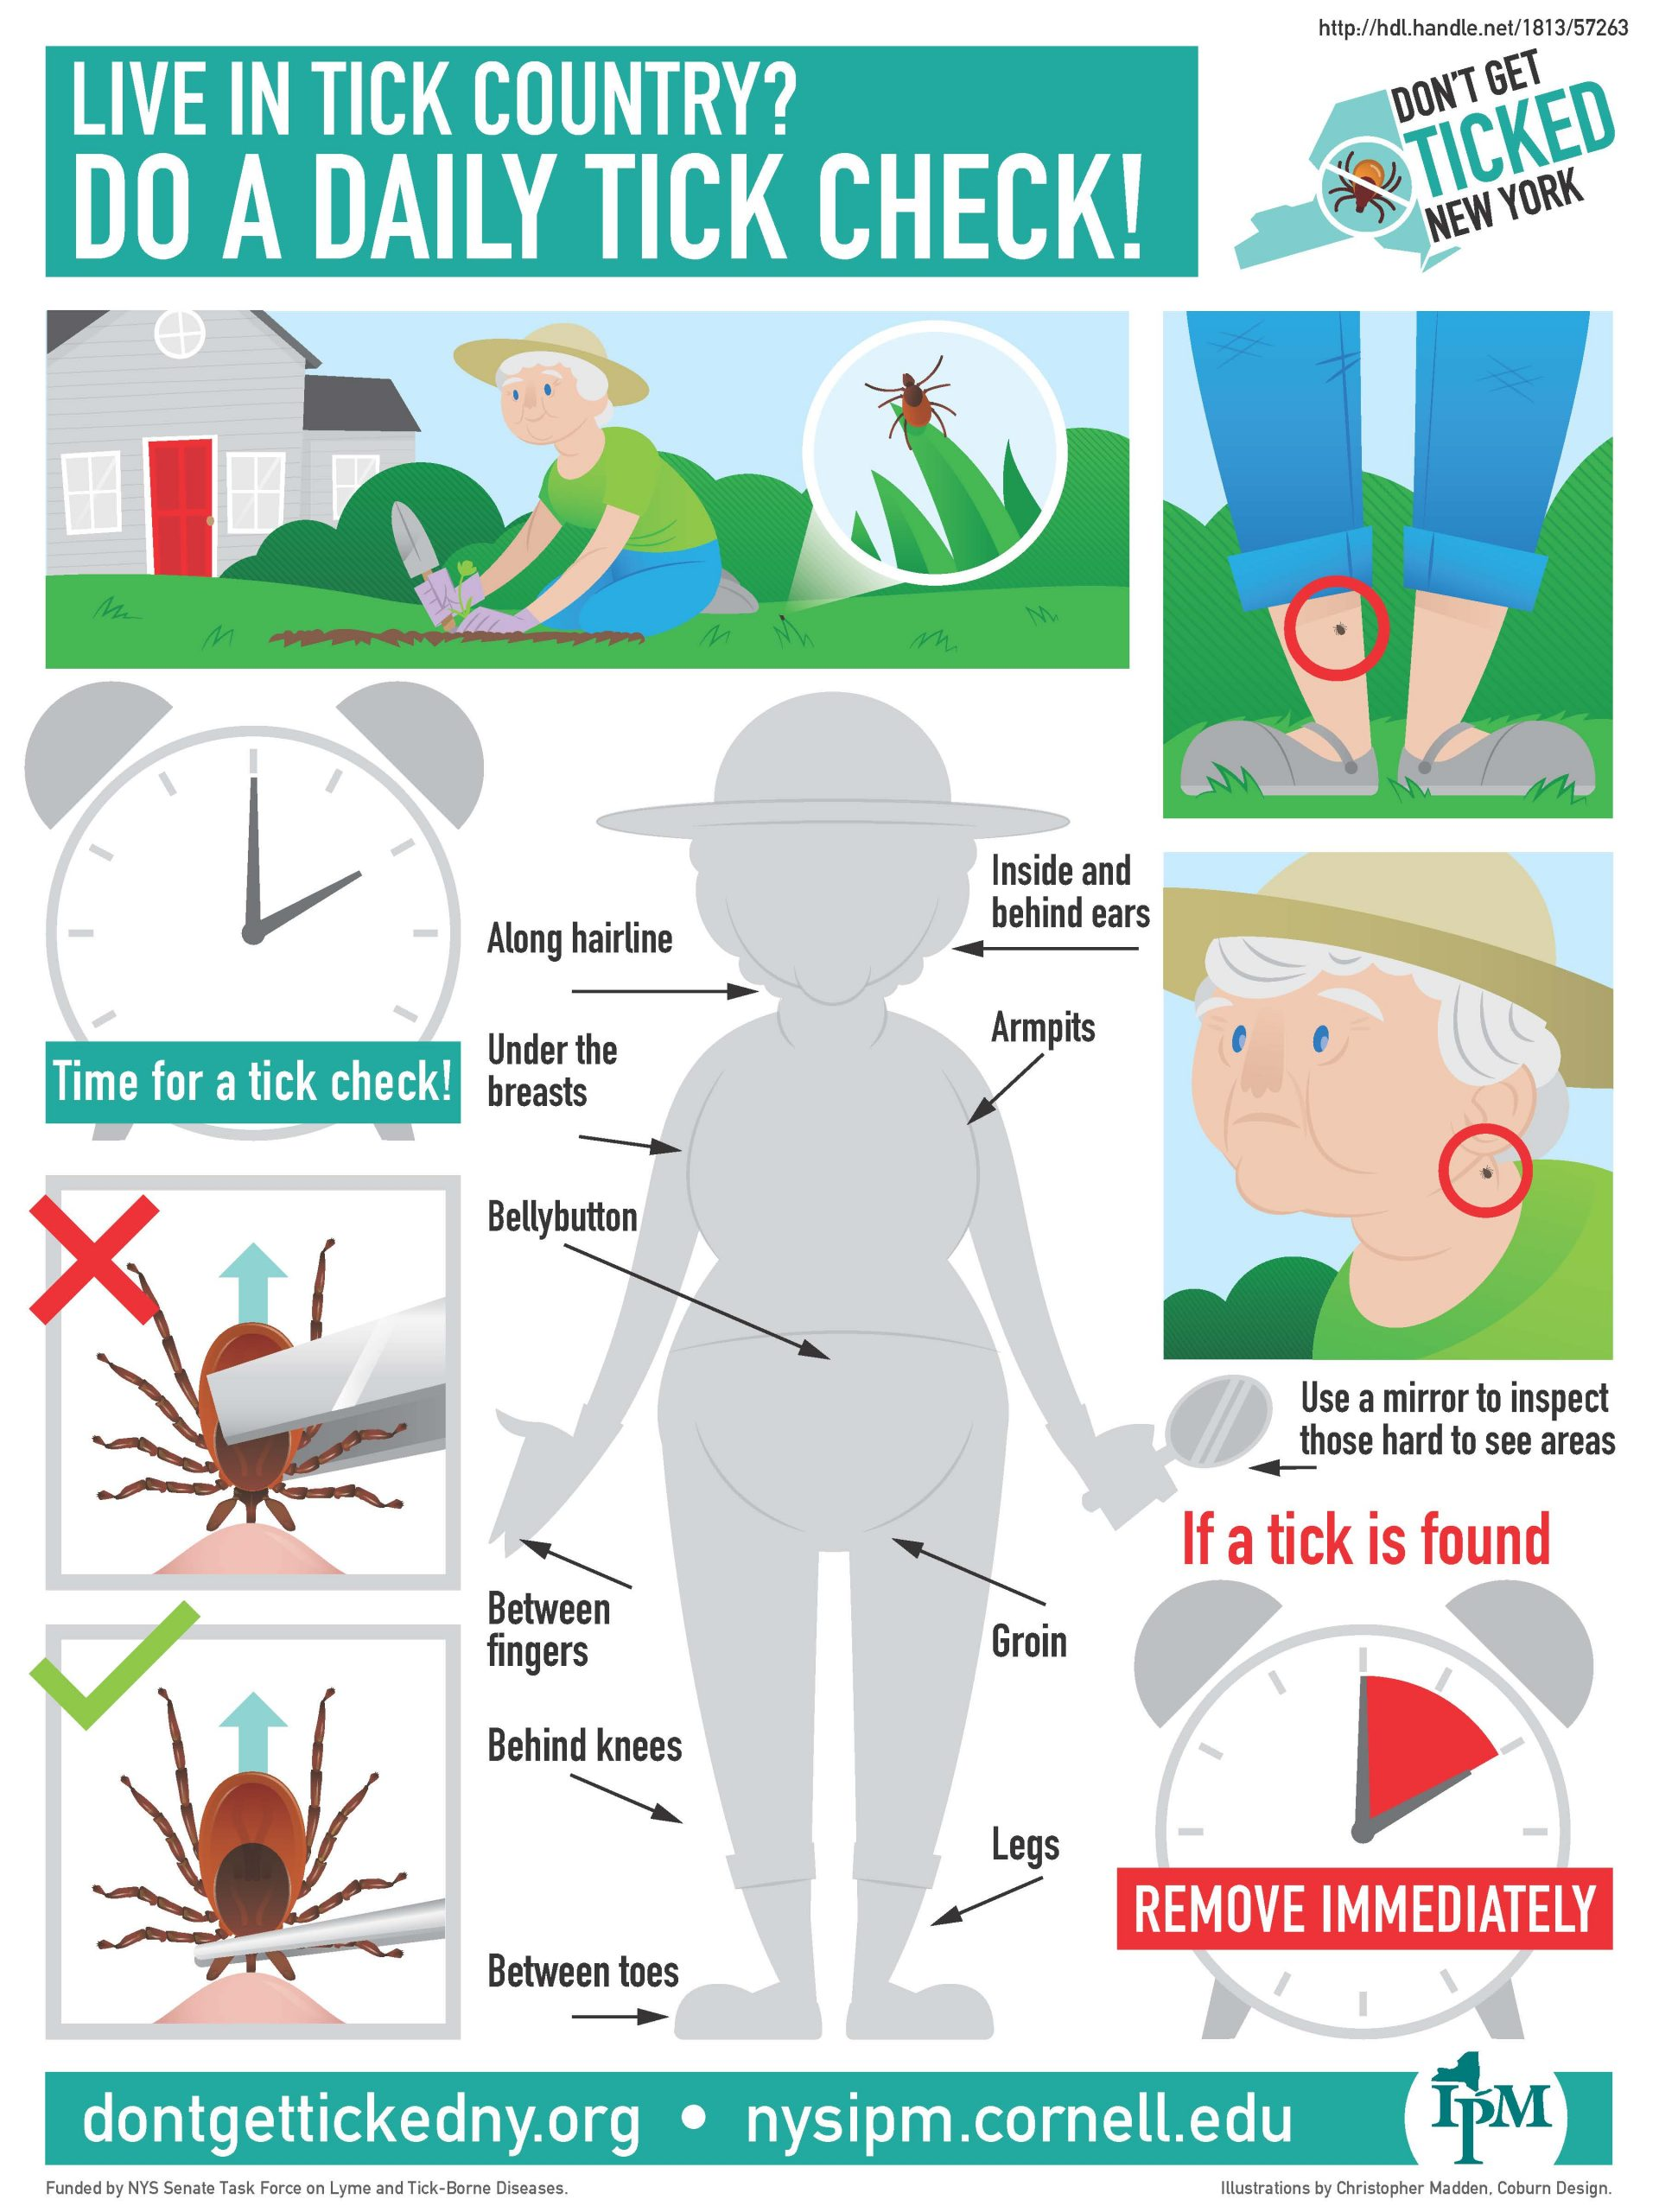 Infographic describing how to check yourself for ticks